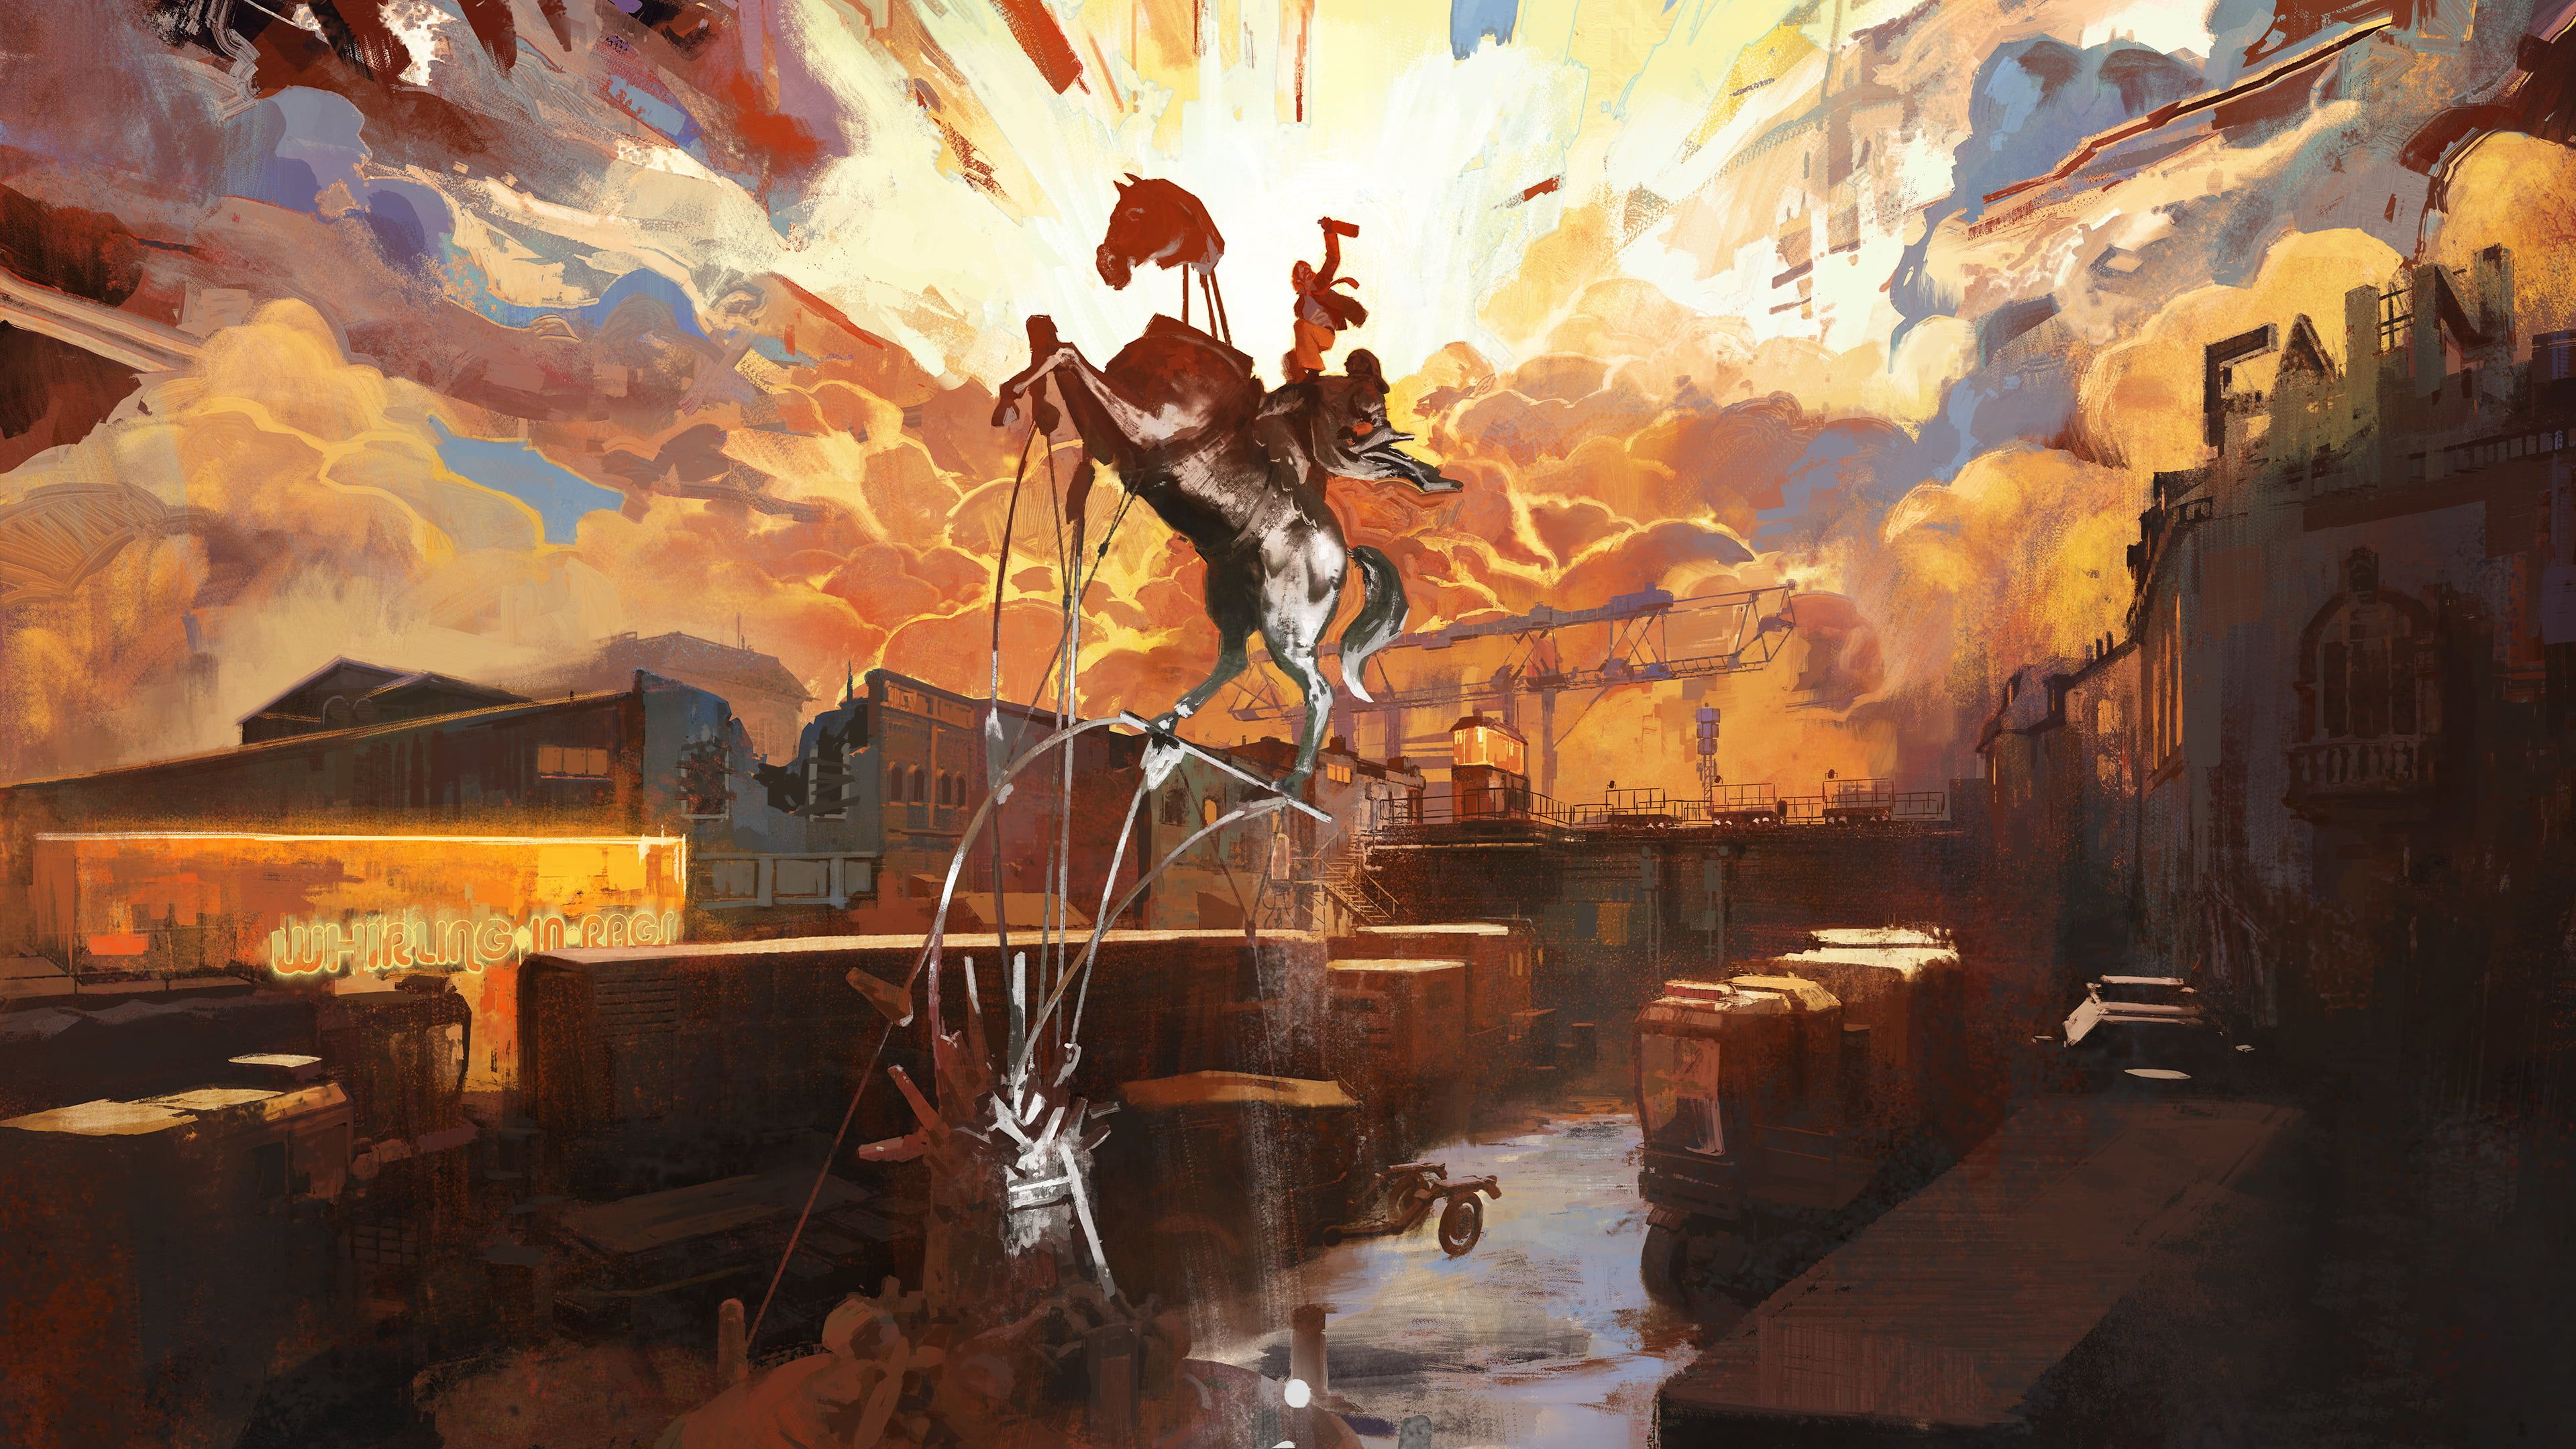 Disco Elysium Artwork Aleksander Rostov Game Art 4k Concept Art Digital 4k Wallpaper Hdwallpaper Desktop Concept Art Art Elysium